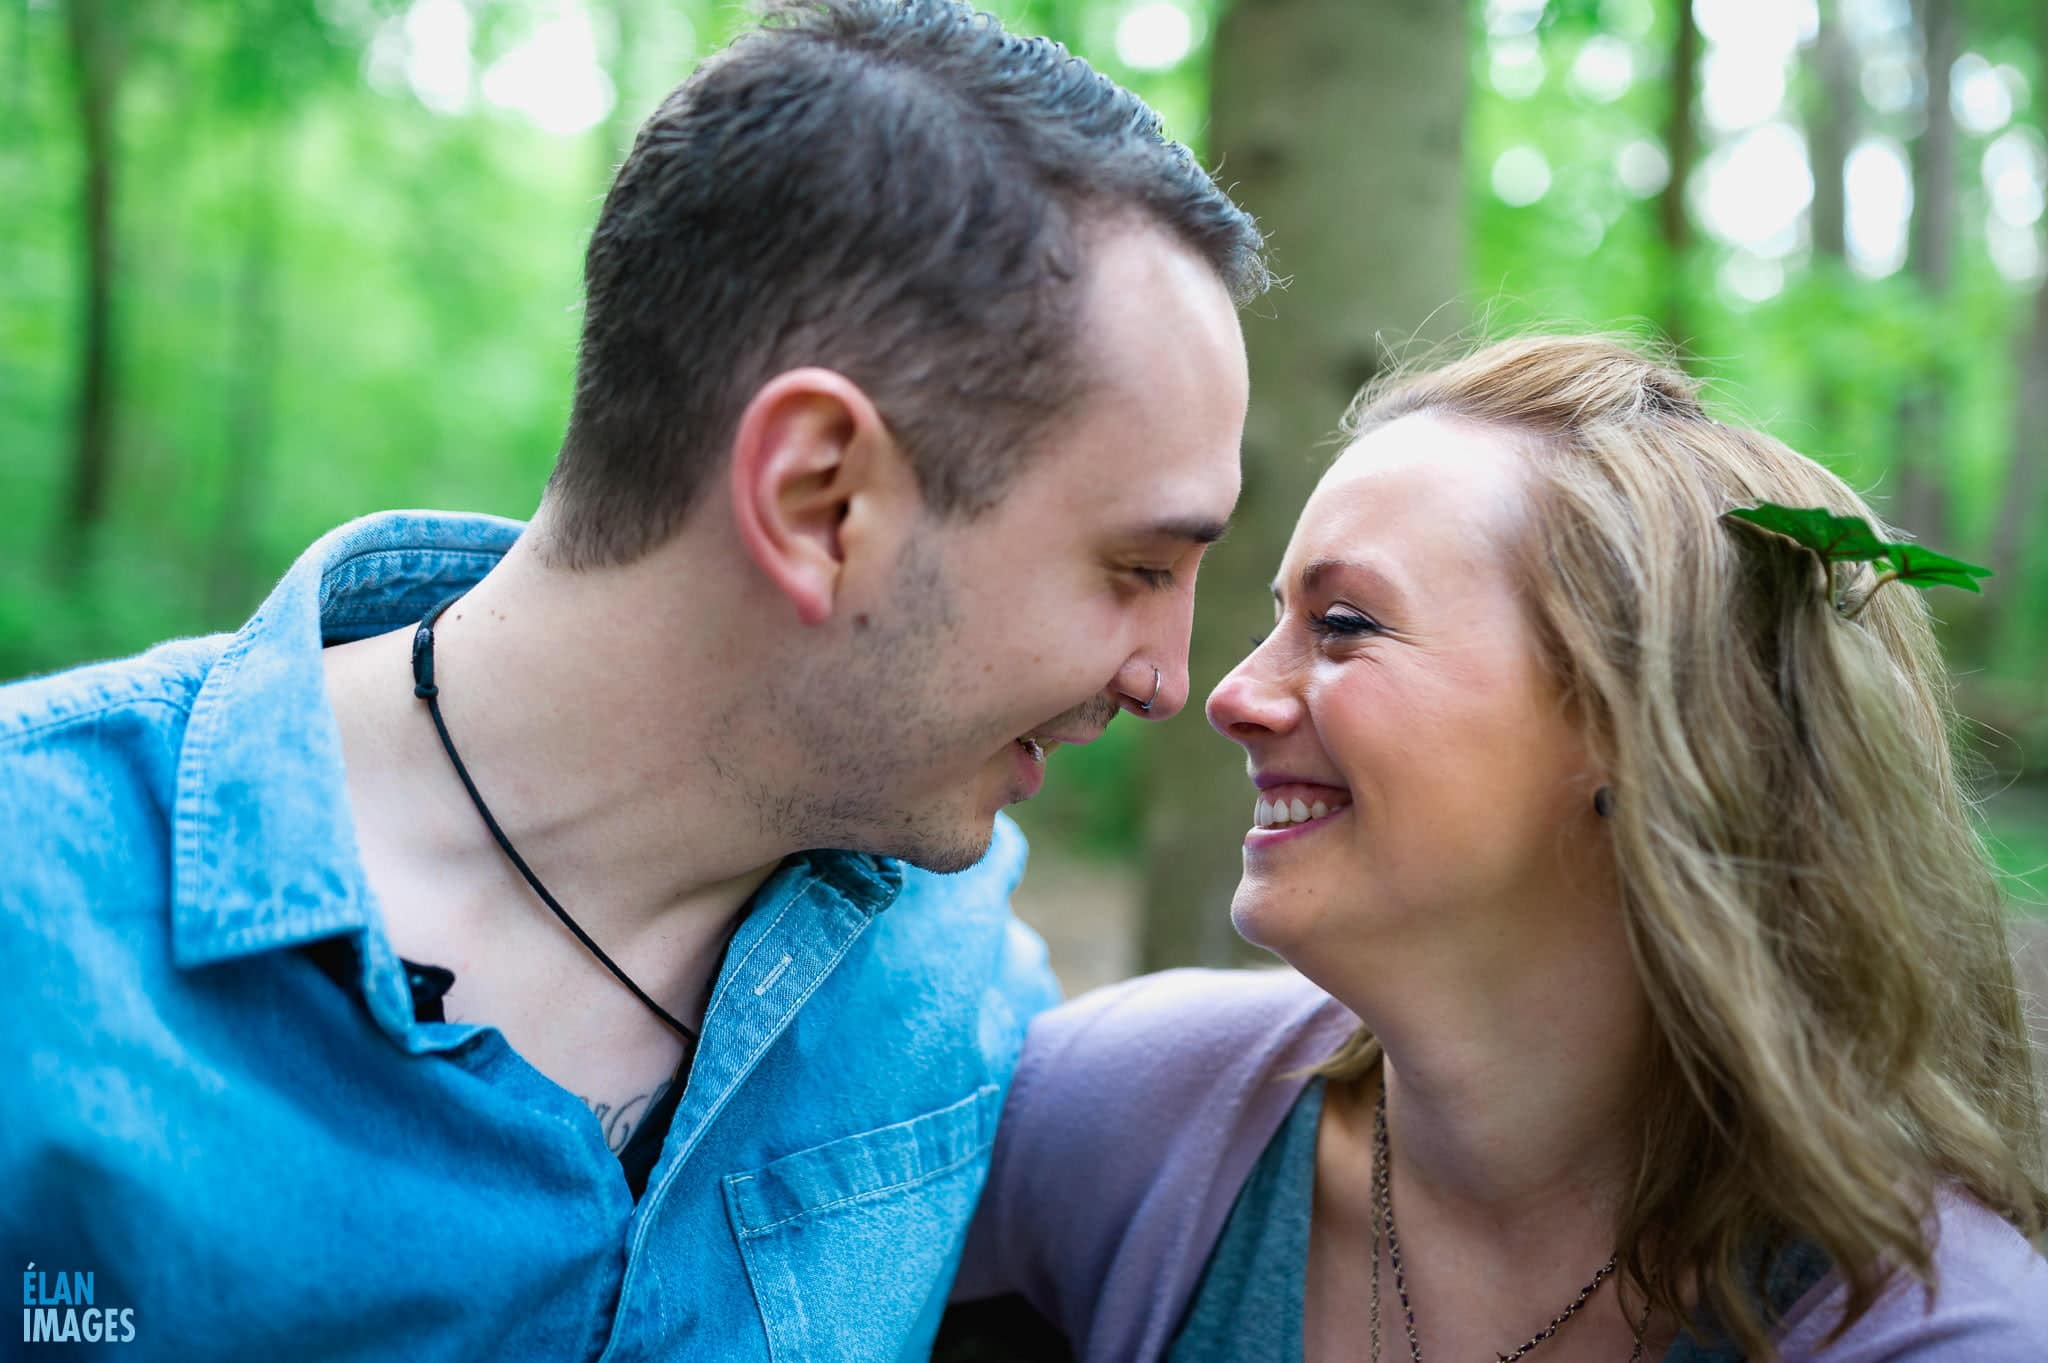 Engagement Photo Shoot in the Bluebell Woods near Bristol 50